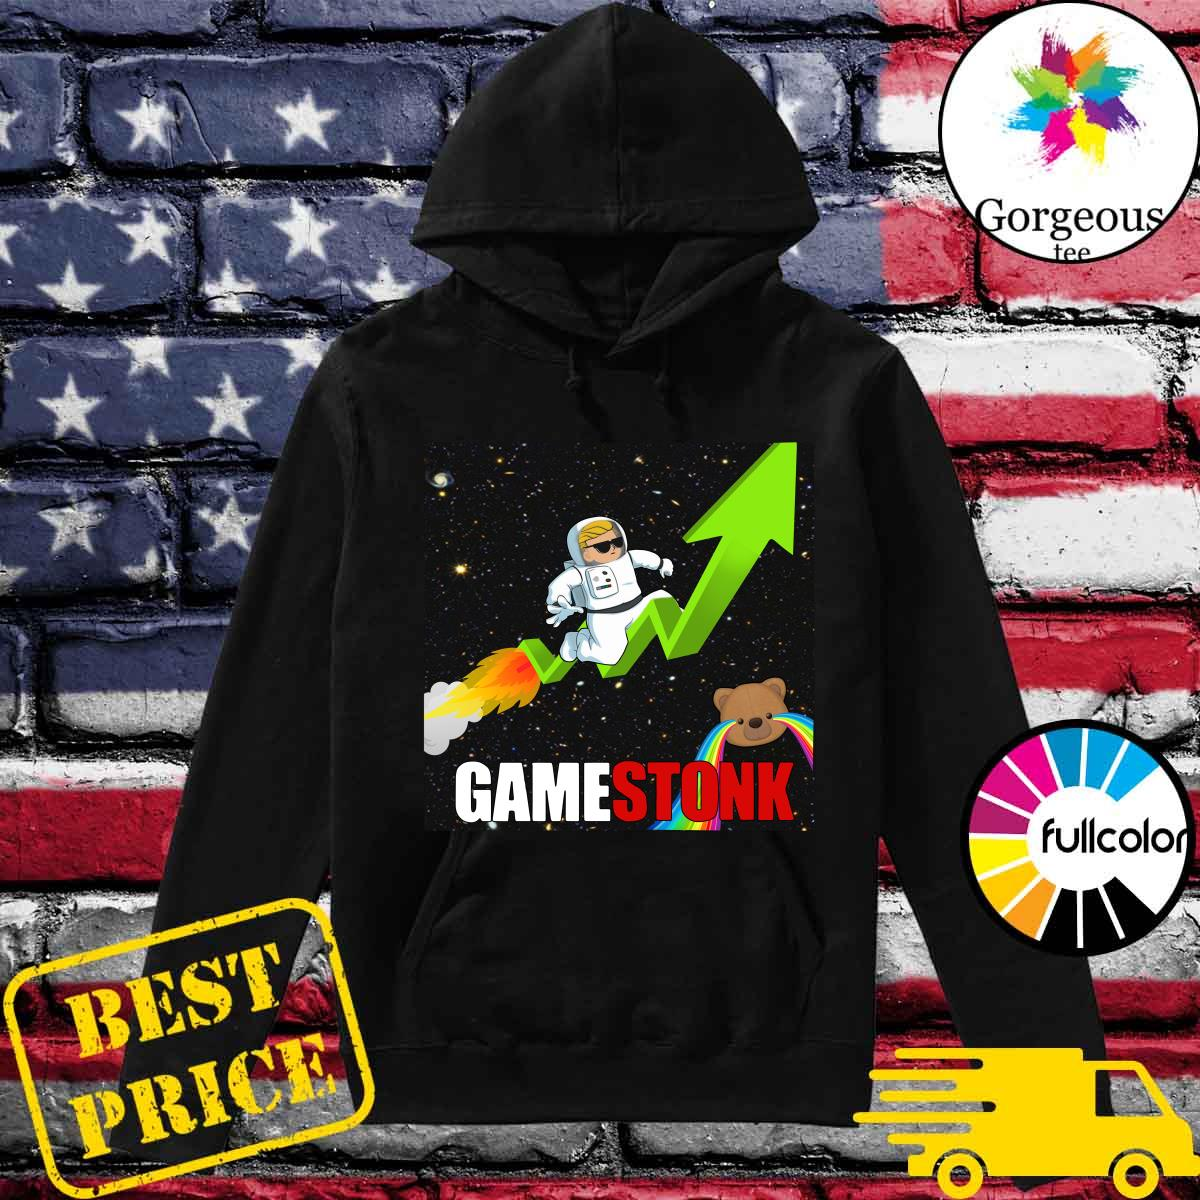 Official Logo #Gamestonk2021 – Gamestonk Stock Market – Can't Stop Game Stonk GME T-Shirt Hoodie